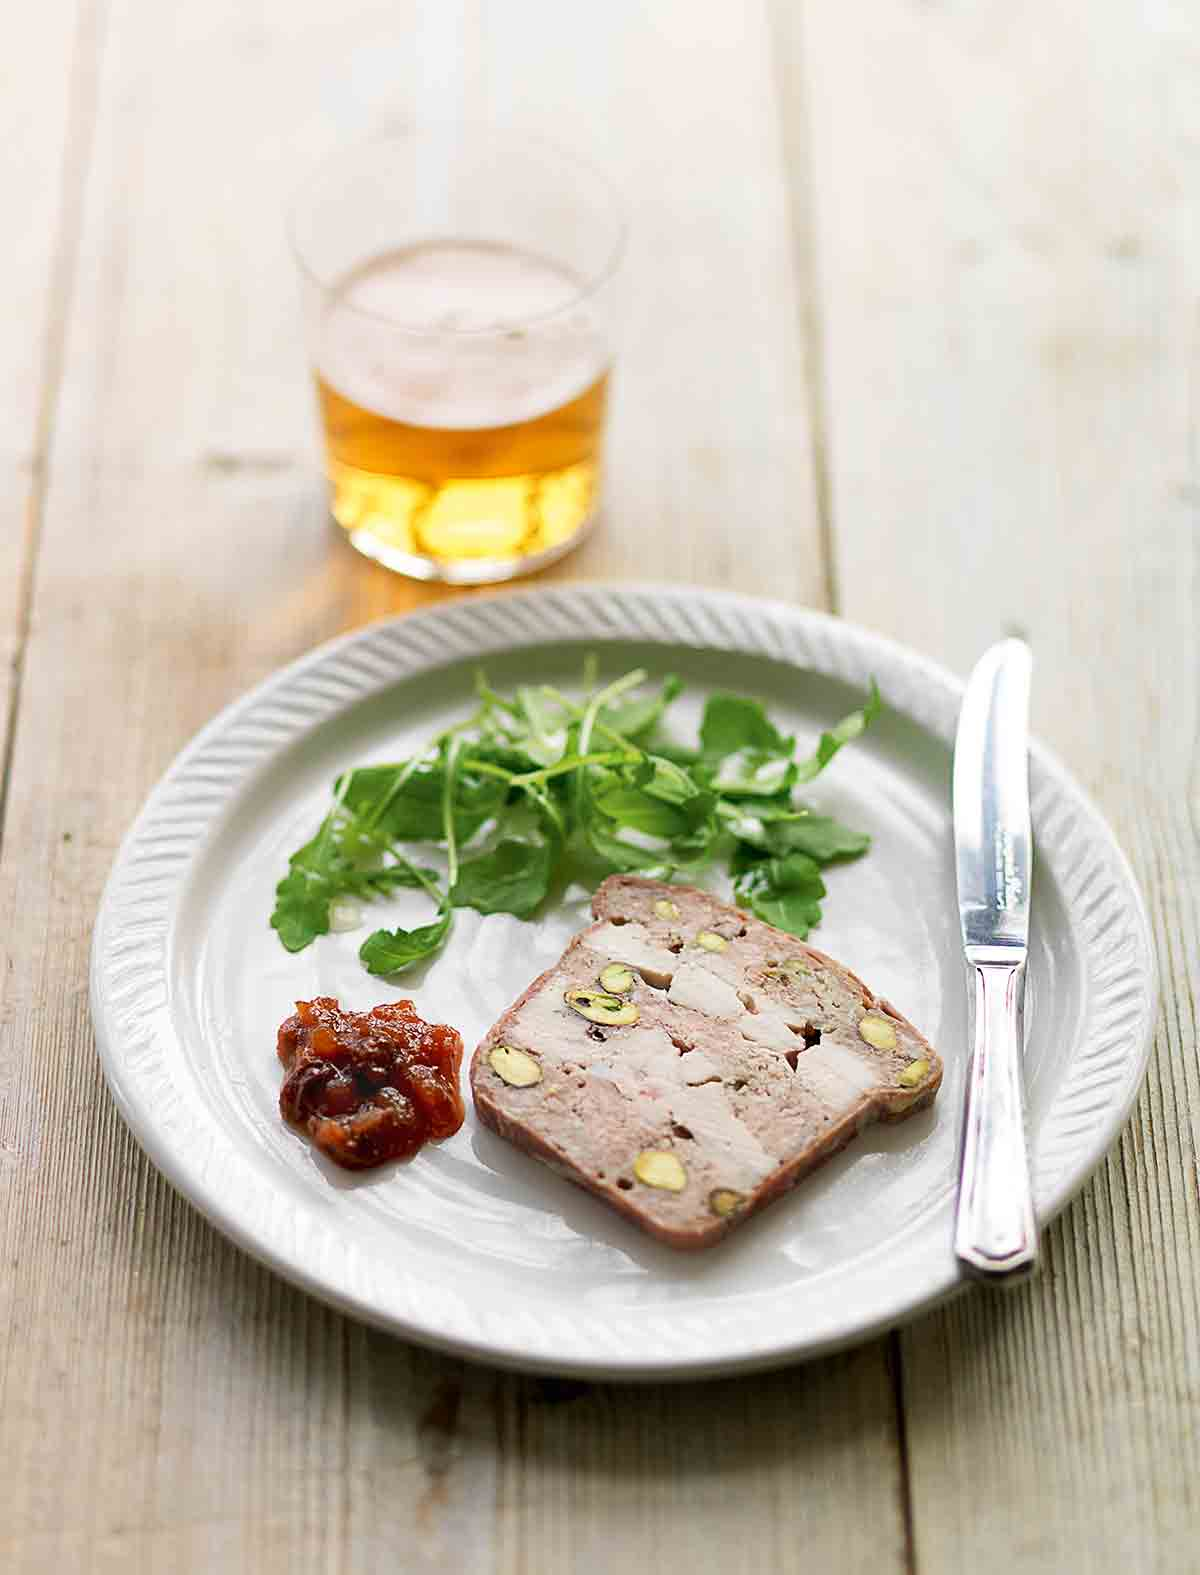 A white plate topped with a slice of chicken, pork, and pistachio terrine, a dollop of chutney, some arugula leaves and a knife.